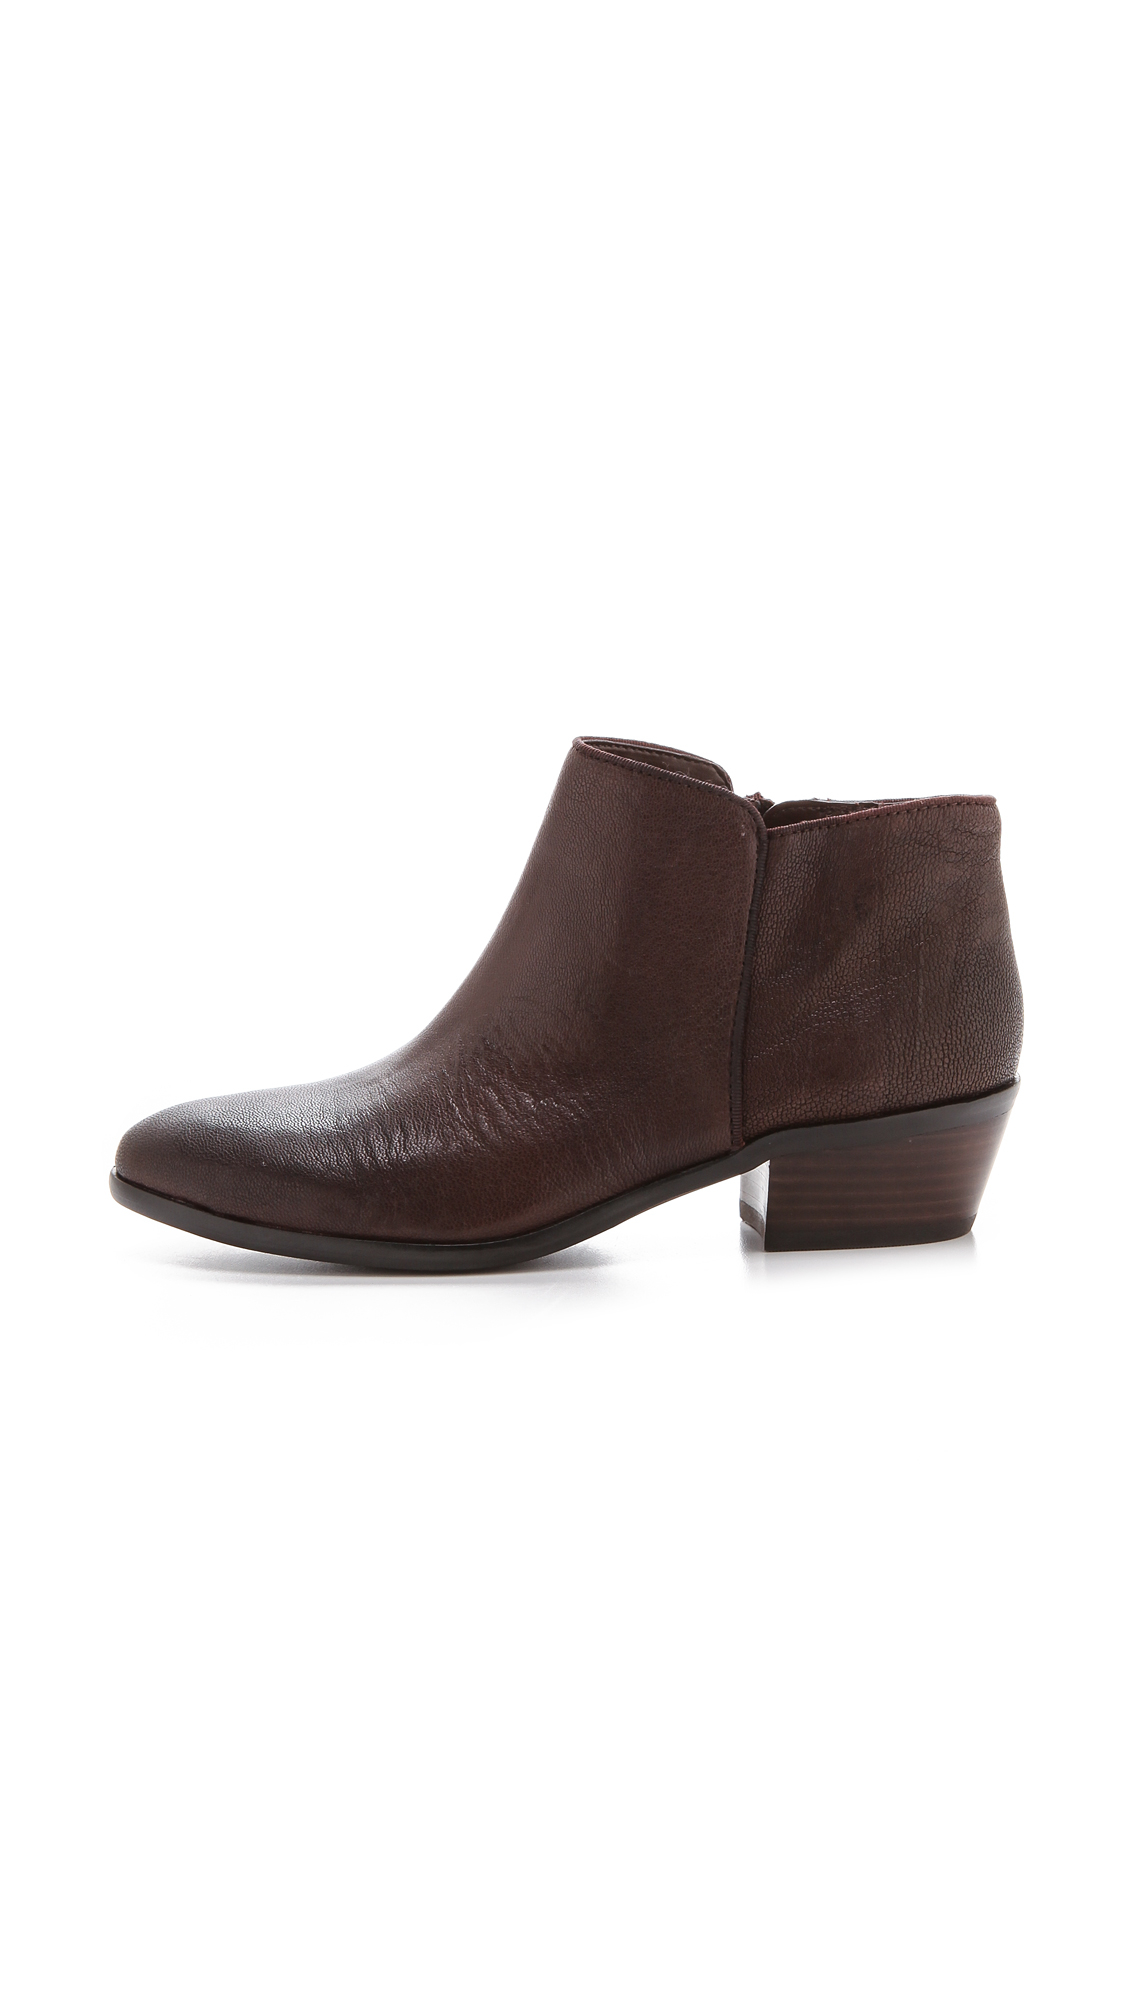 Sam Edelman Ankle Booties Petty In Brown Lyst